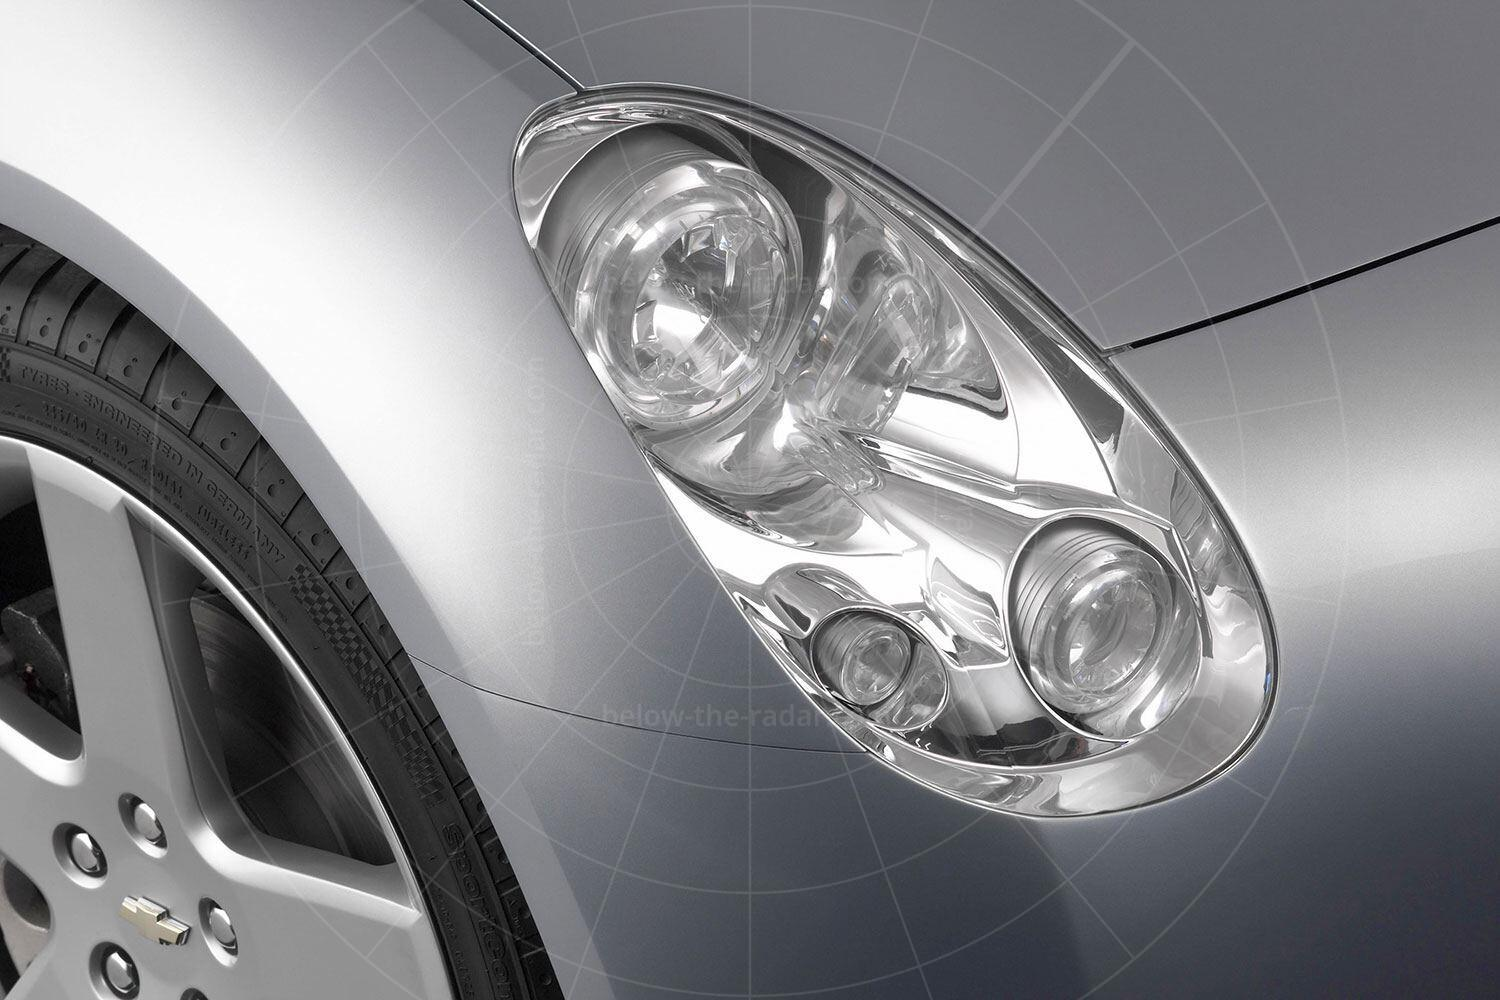 The 2004 Chevrolet Nomad concept - headlight Pic: GM | The 2004 Chevrolet Nomad concept - headlight